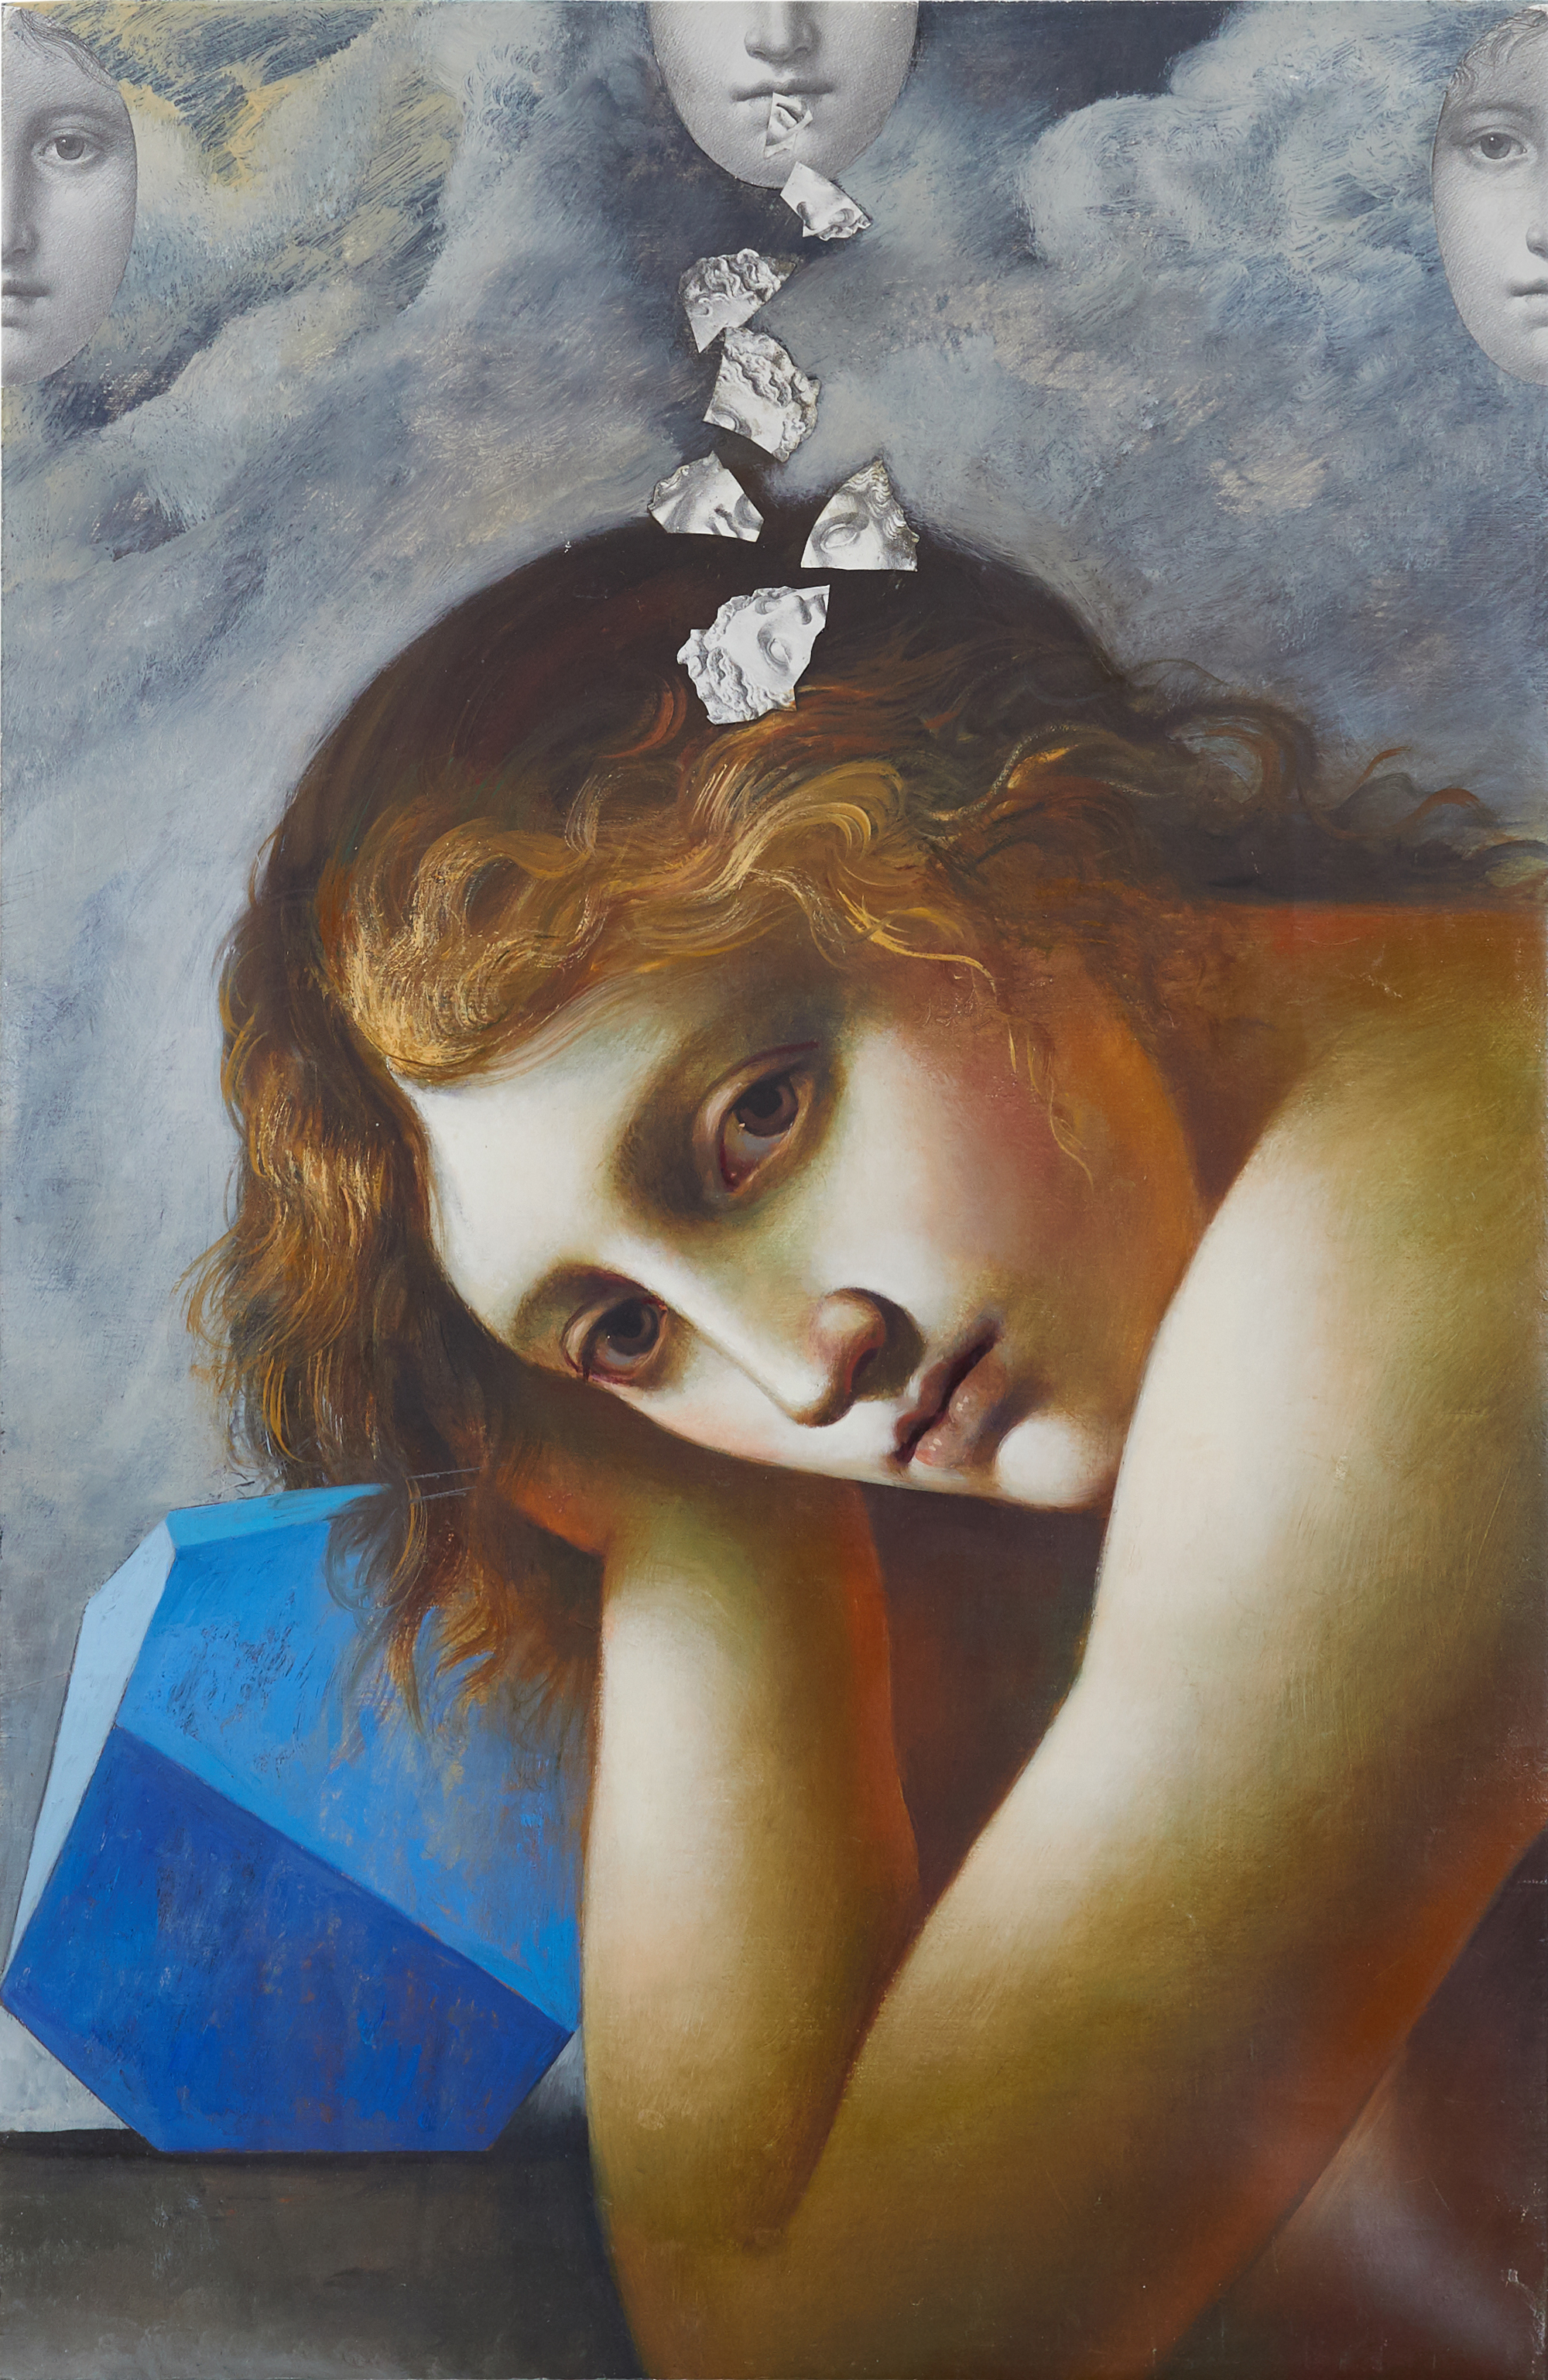 Melancolia (Melancholy), 2012. Oil and collage on canvas, 60 x 39 cm. New York, Collection of the Artist and Carol Lane, inv. no. 580.2012.D.jpg